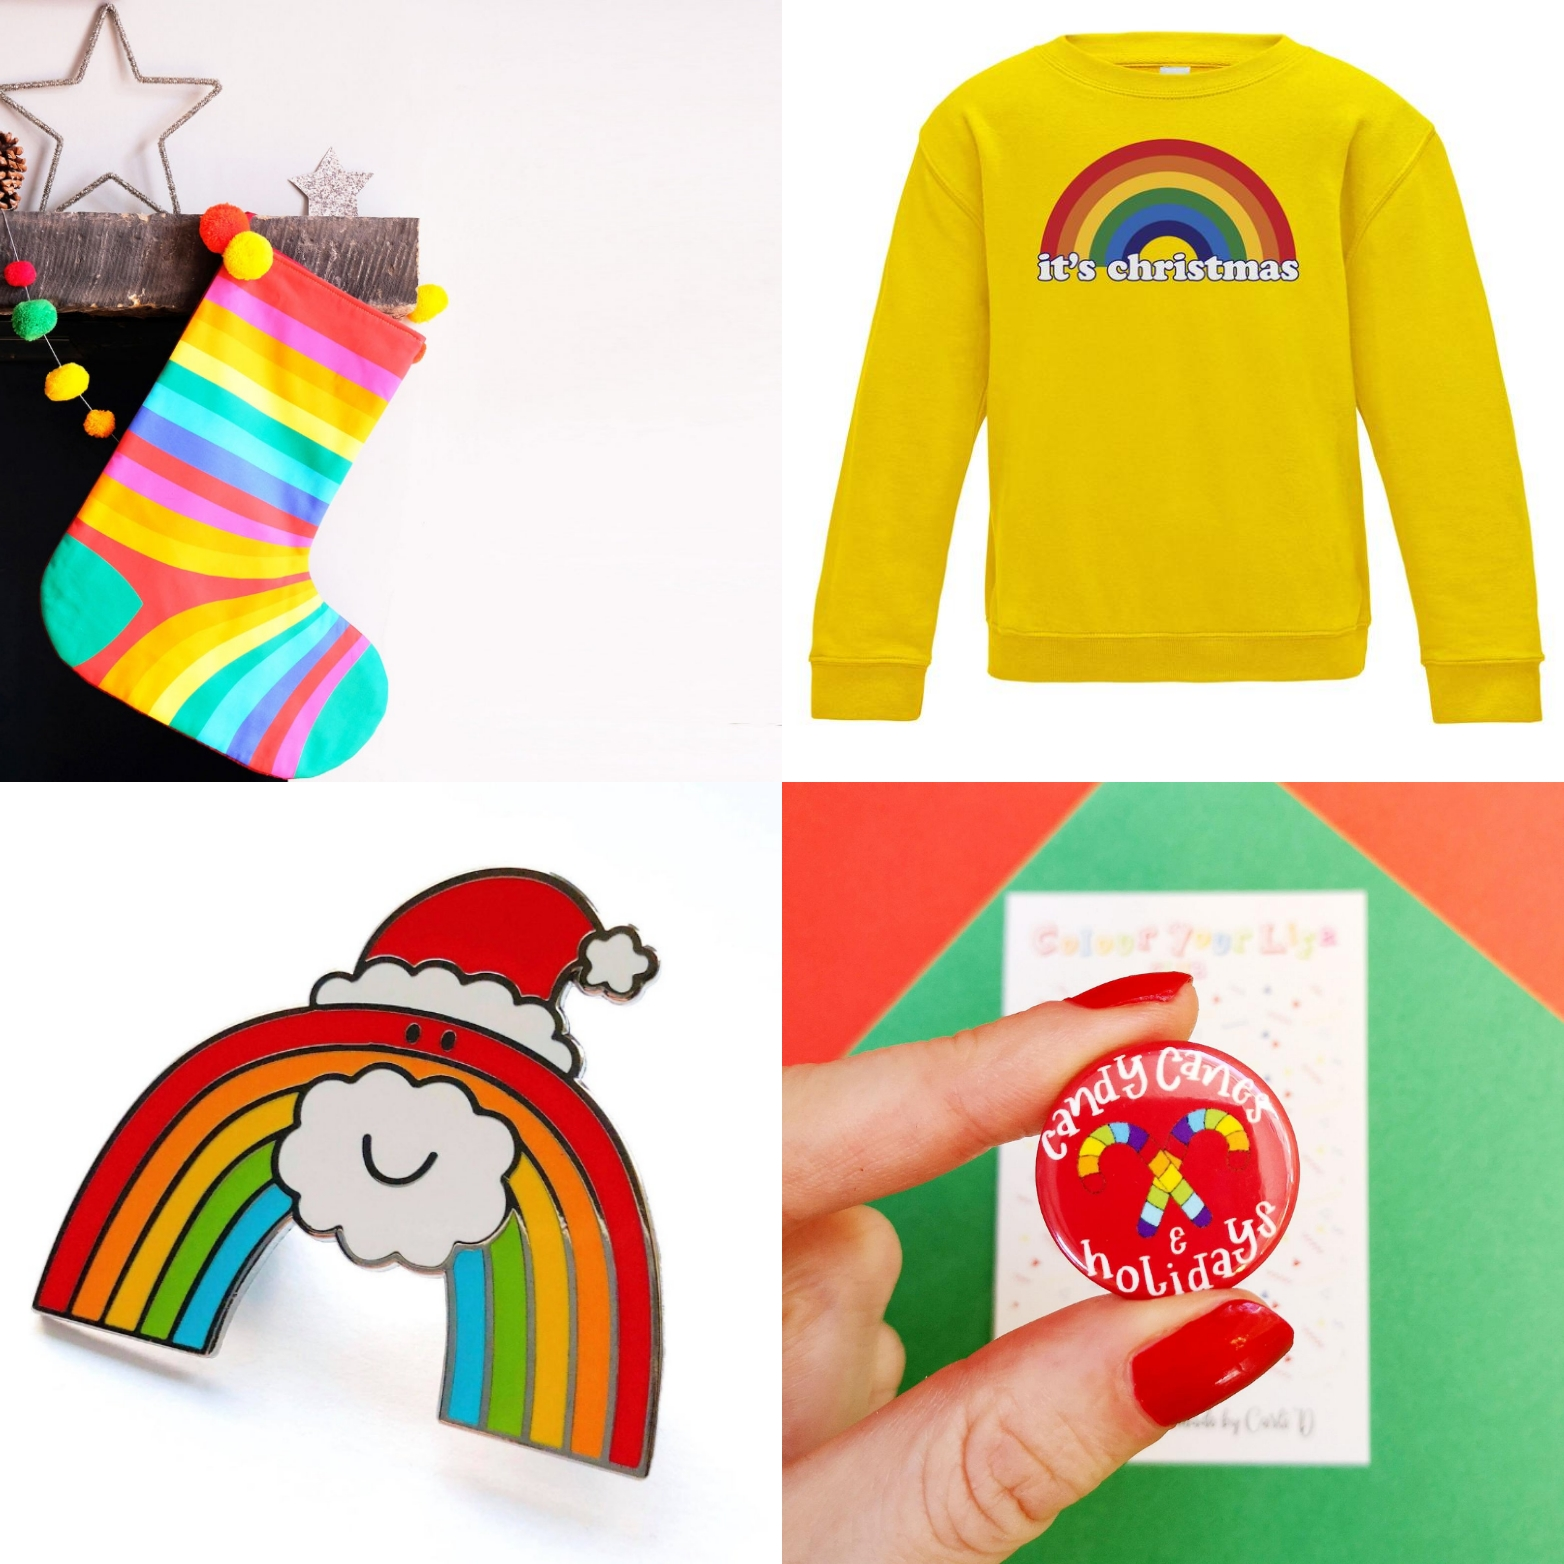 Rainbow Christmas Etsy accessories | Hello! Hooray!